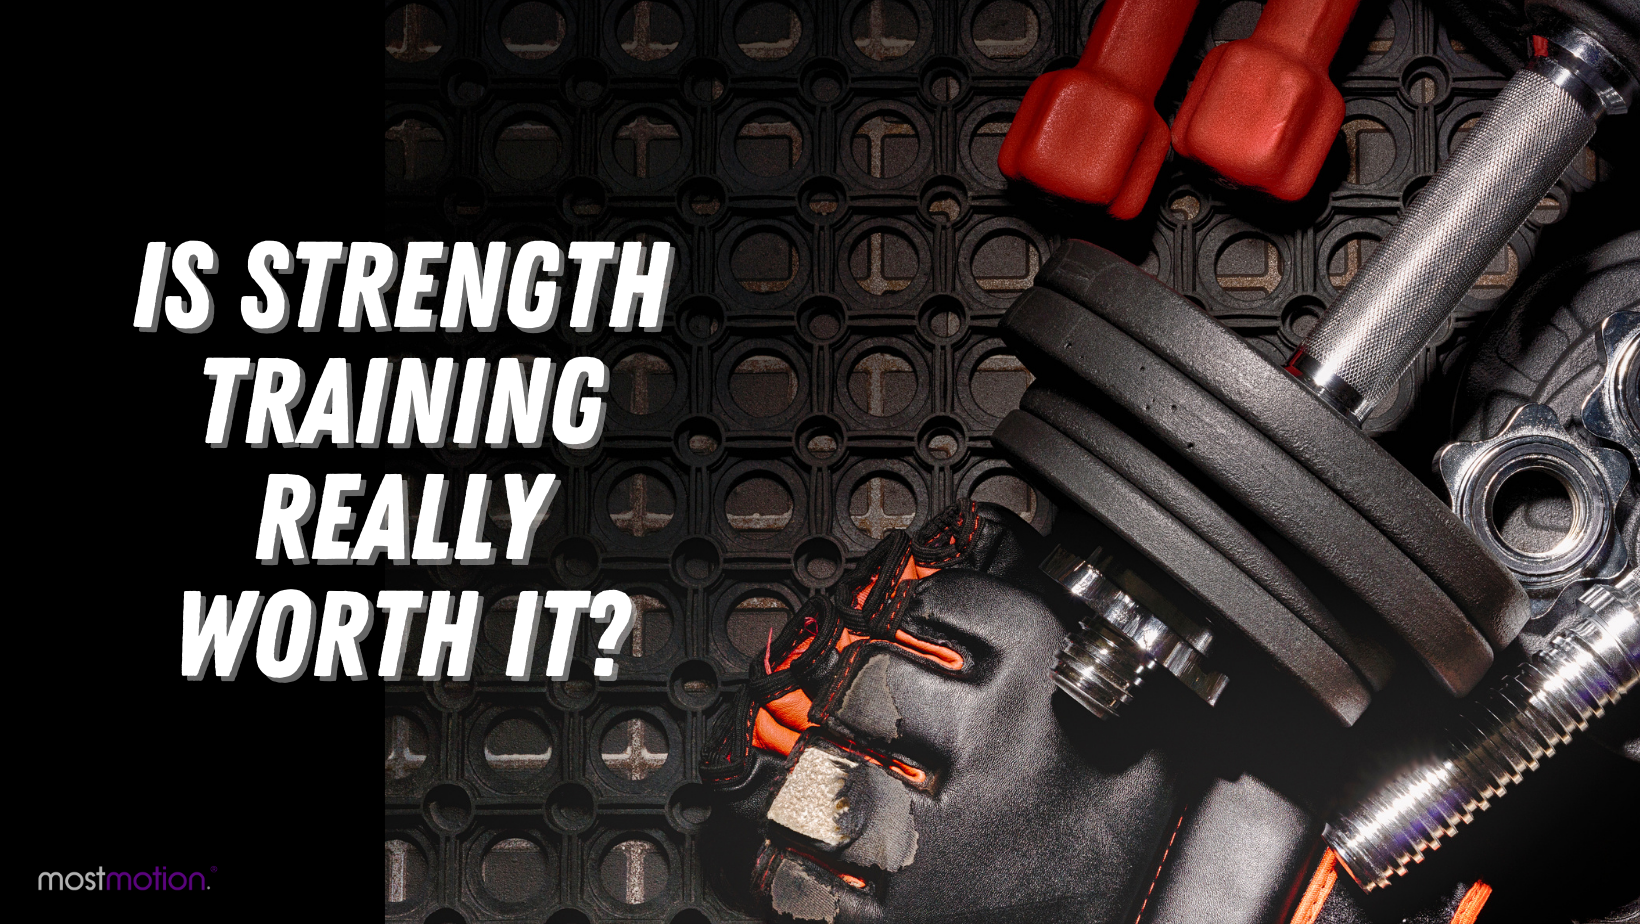 Is Strength Training Really Worth It?